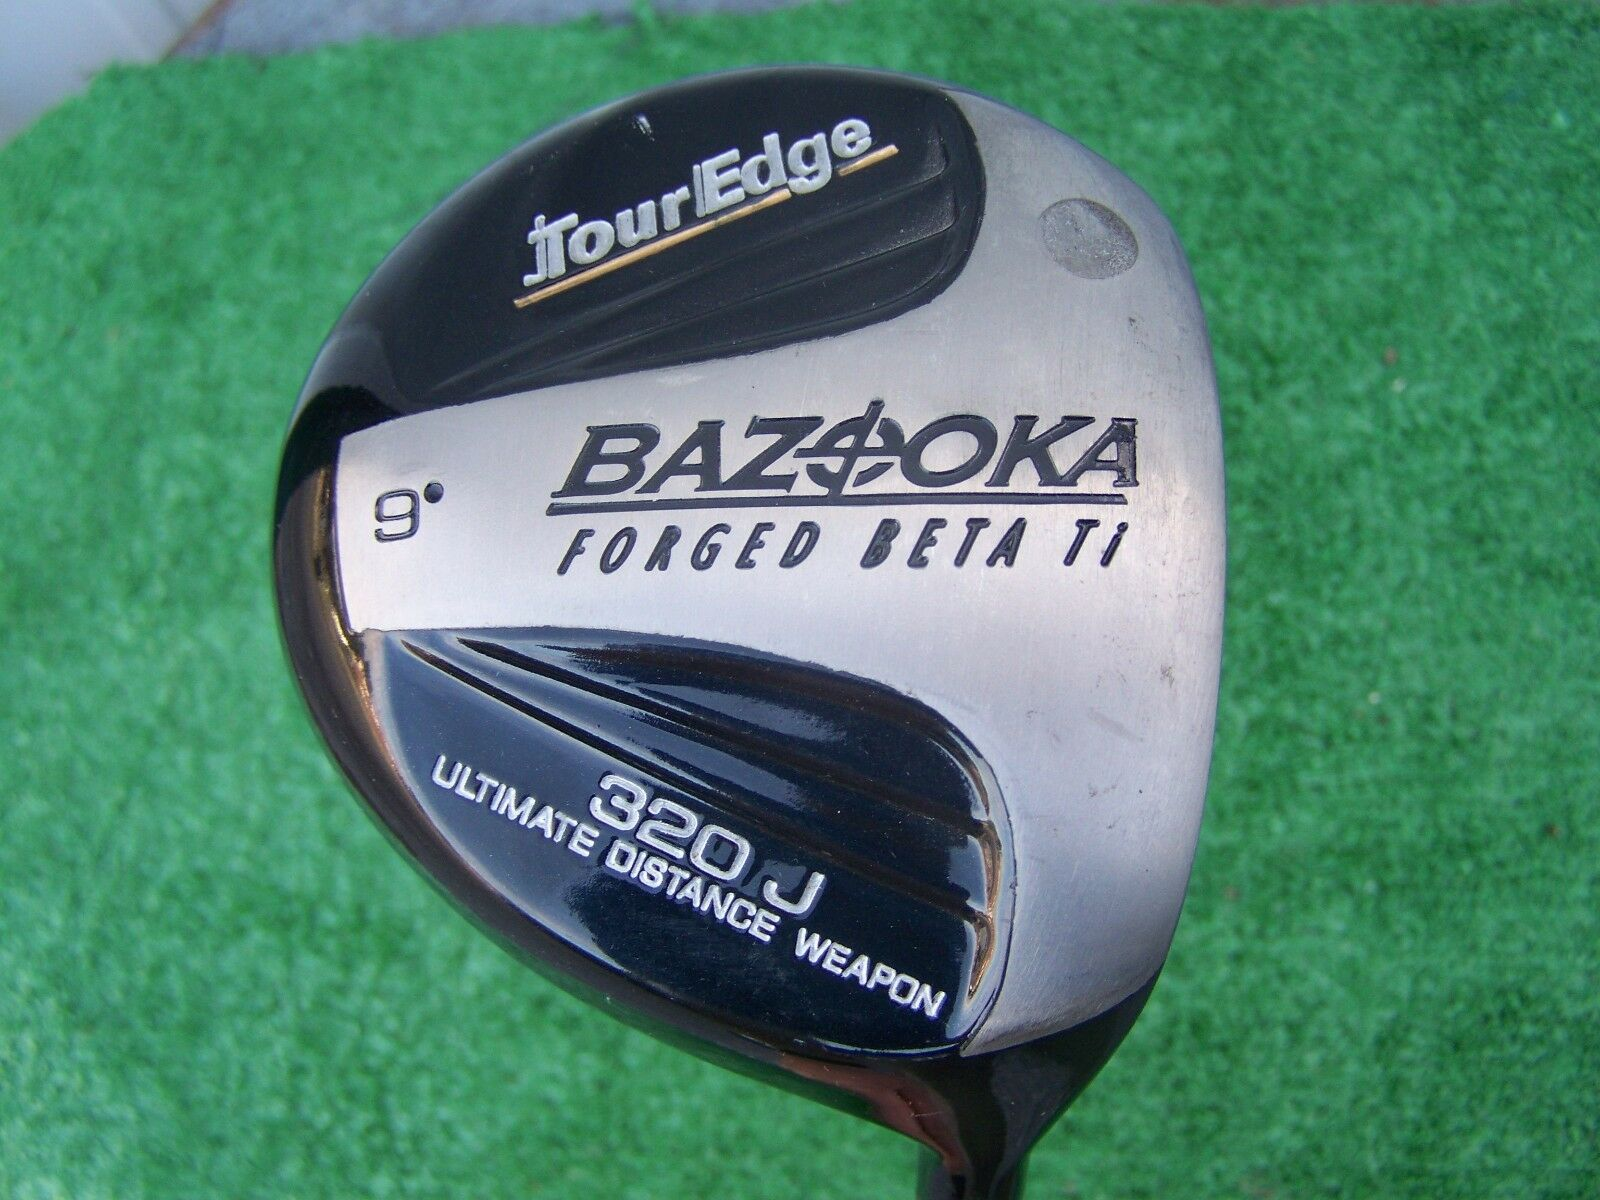 Tour Edge Bazooka Forjado Beta Ti 320  J ULTIMATE Distancia 9  Driver Regular Flex  precios ultra bajos